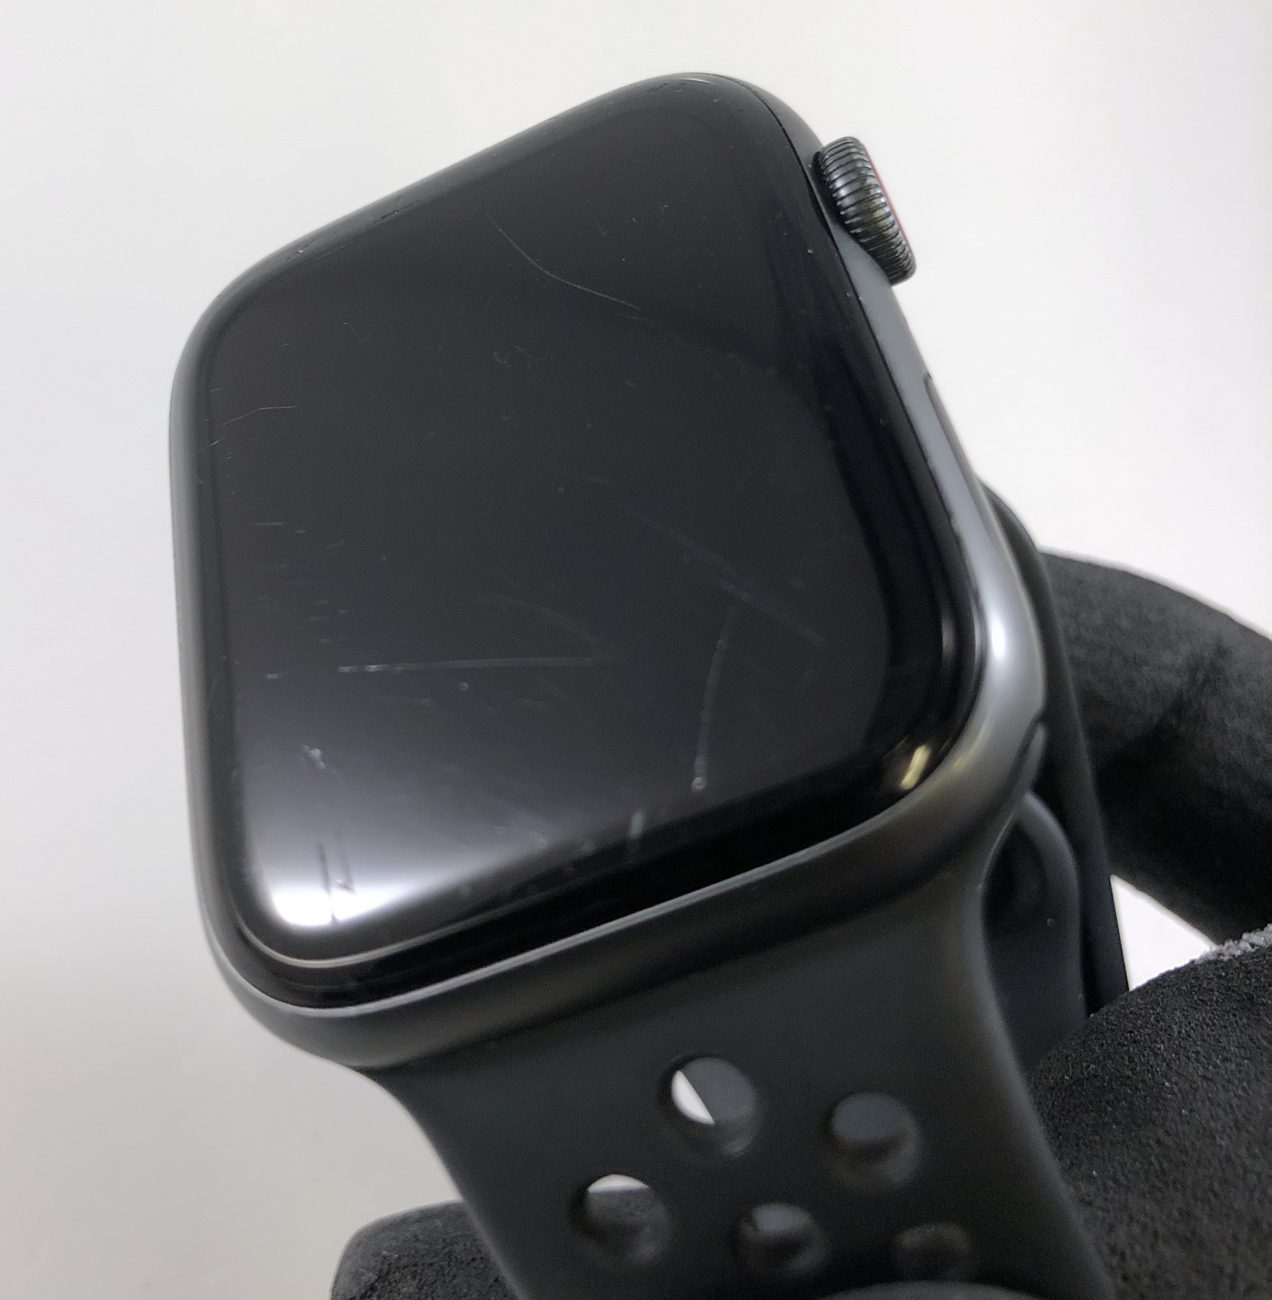 Watch Series 4 Aluminum Cellular (44mm), Space Gray, Anthracite/Black Nike Sport Band, image 3